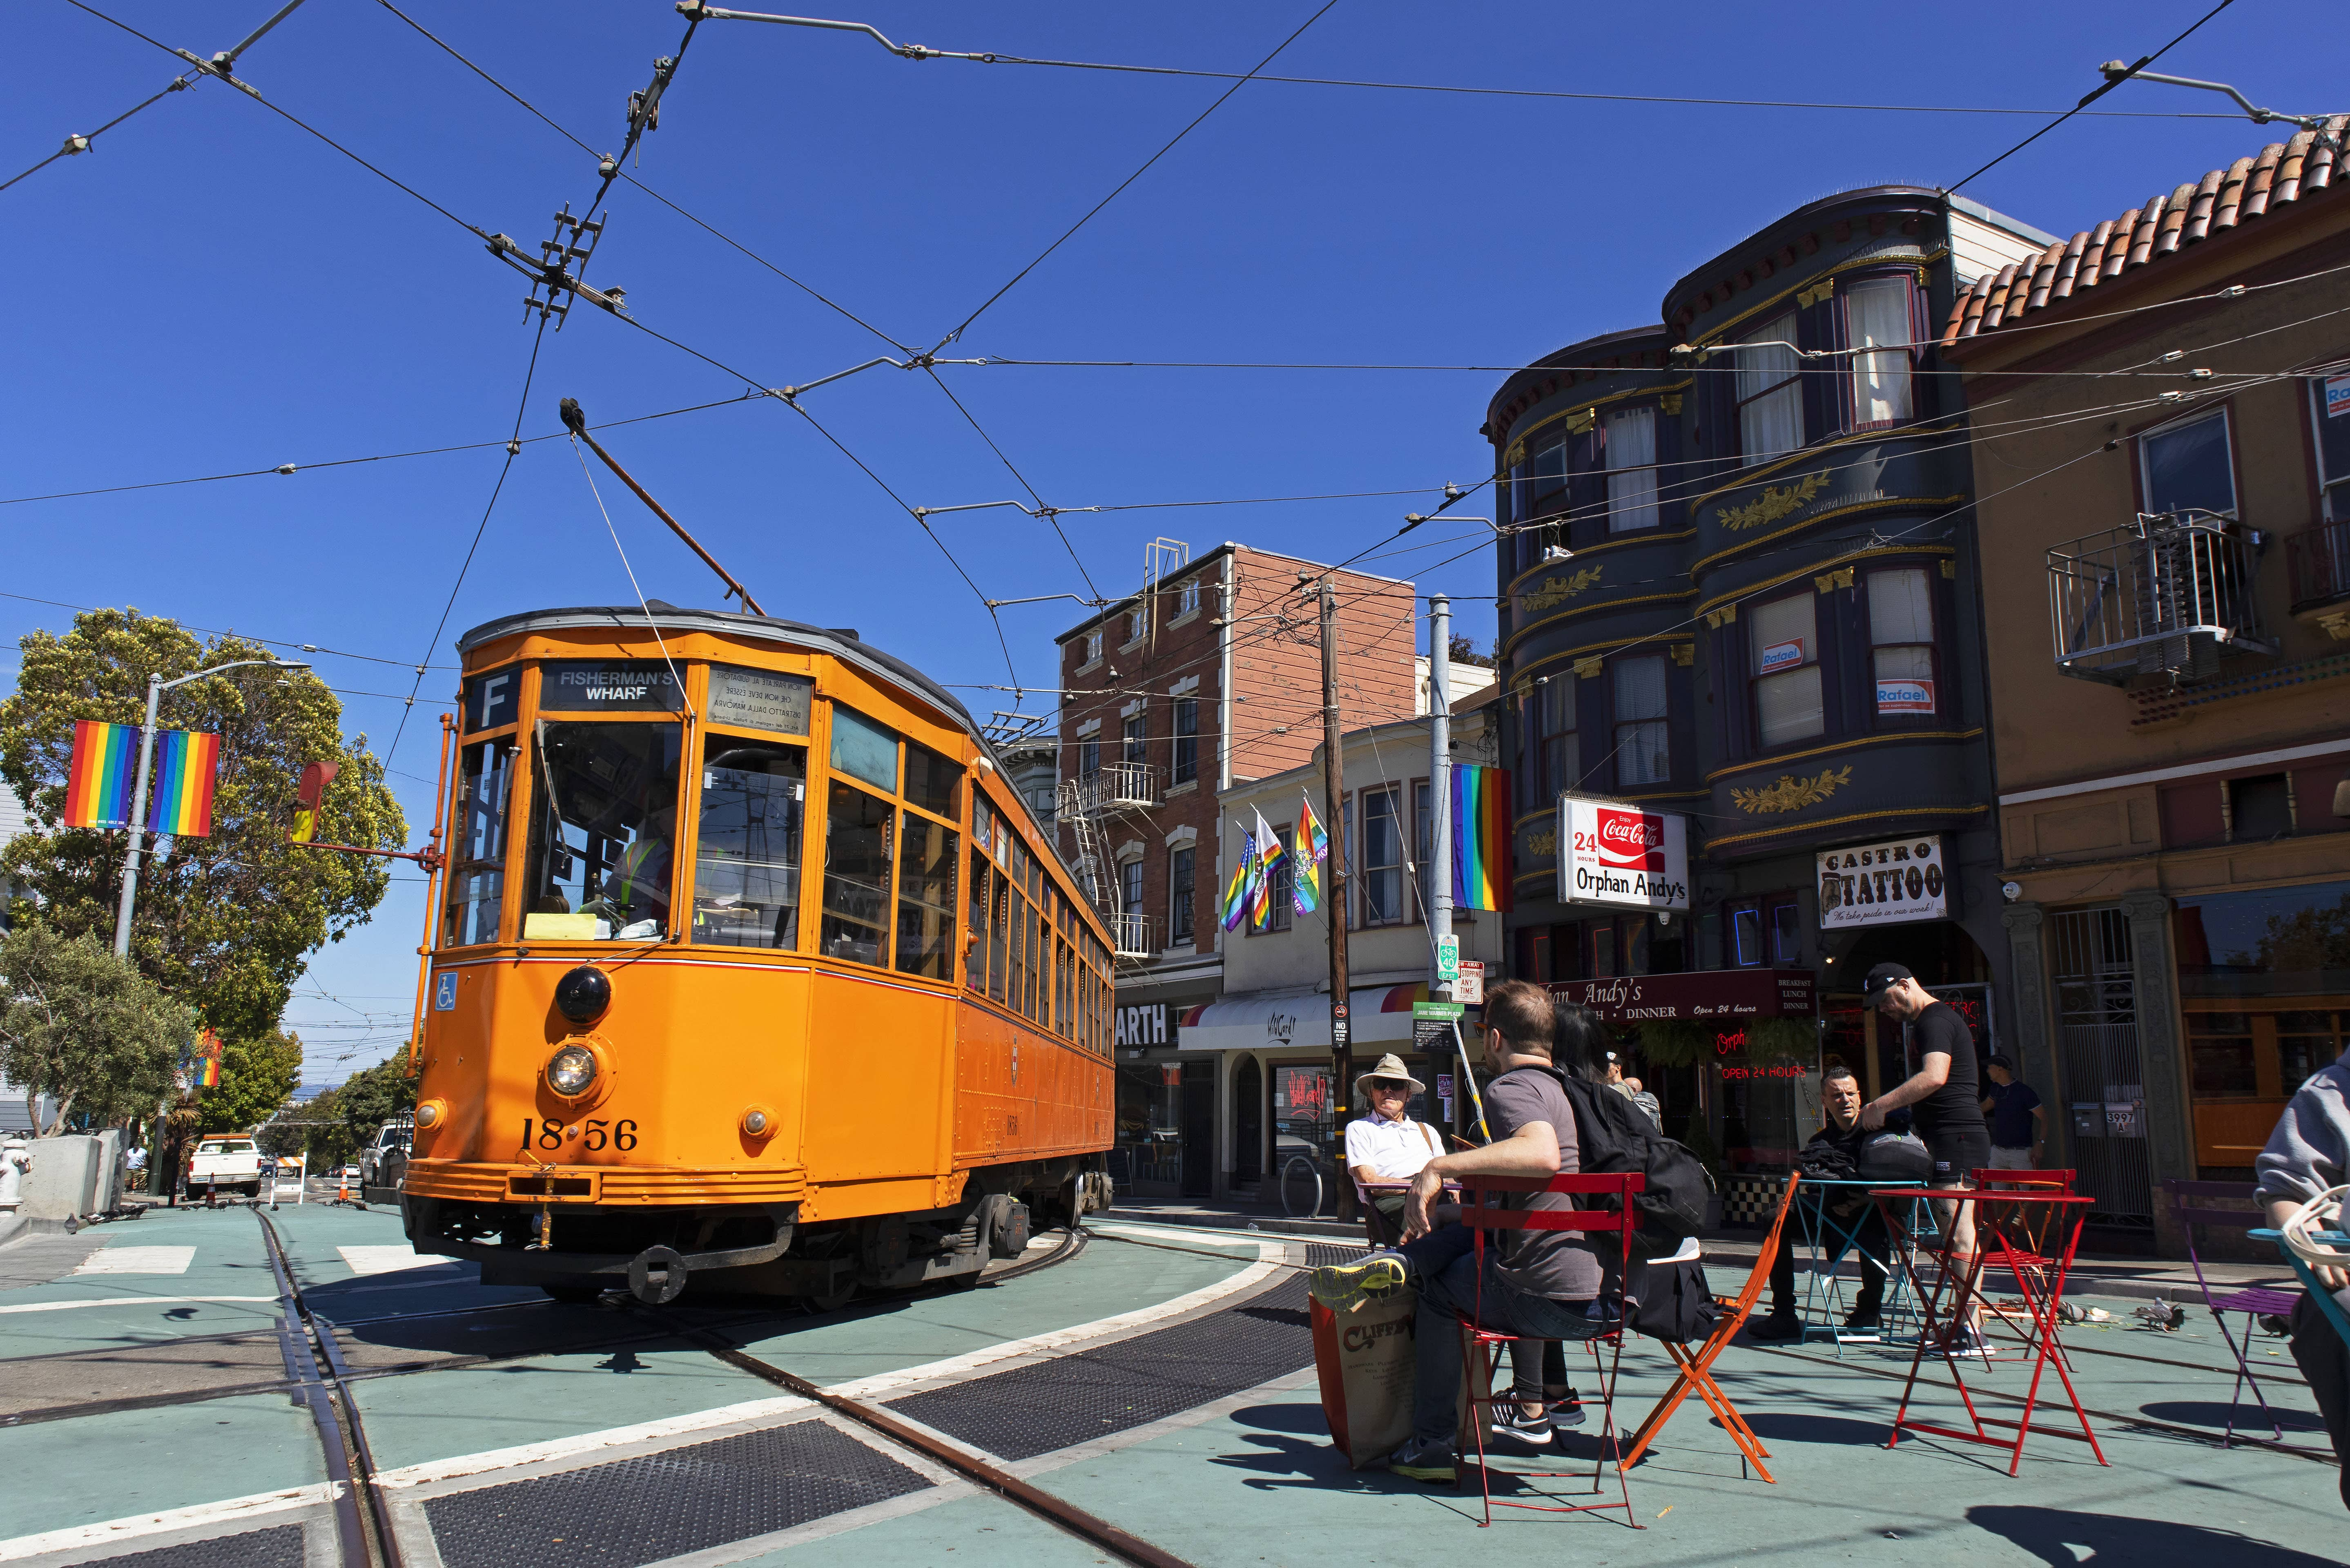 Photo of a streetcar in San Francisco's Castro neighborhood